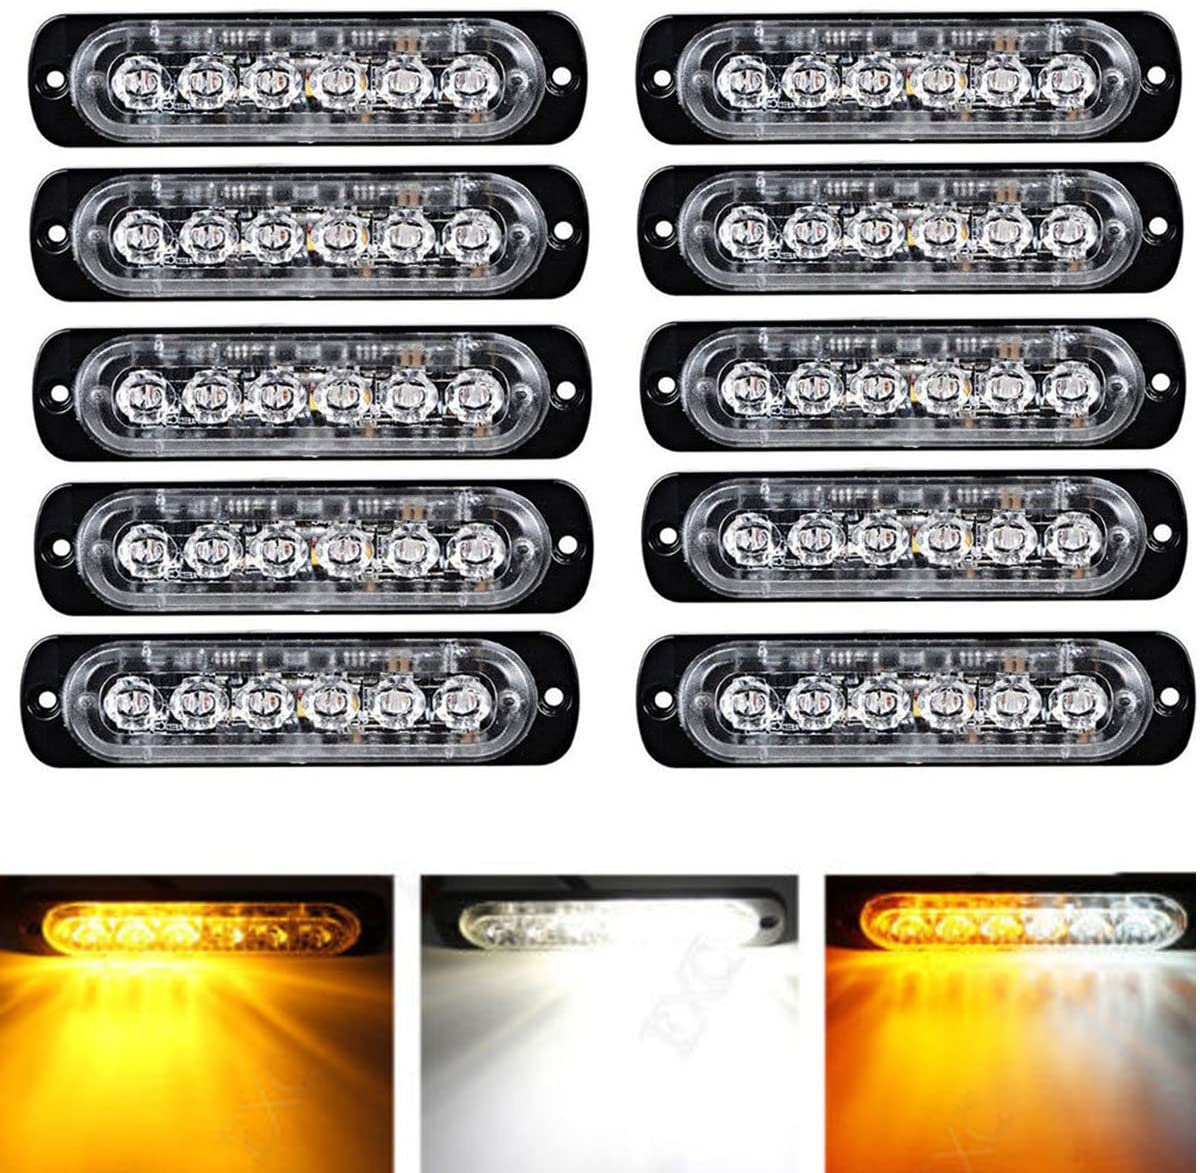 Universal 12V-24V Super Bright Amber/White 18W 6-LED Warning Emergency Construction Surface Mount Beacon Flash Caution Strobe Light Bar (10)